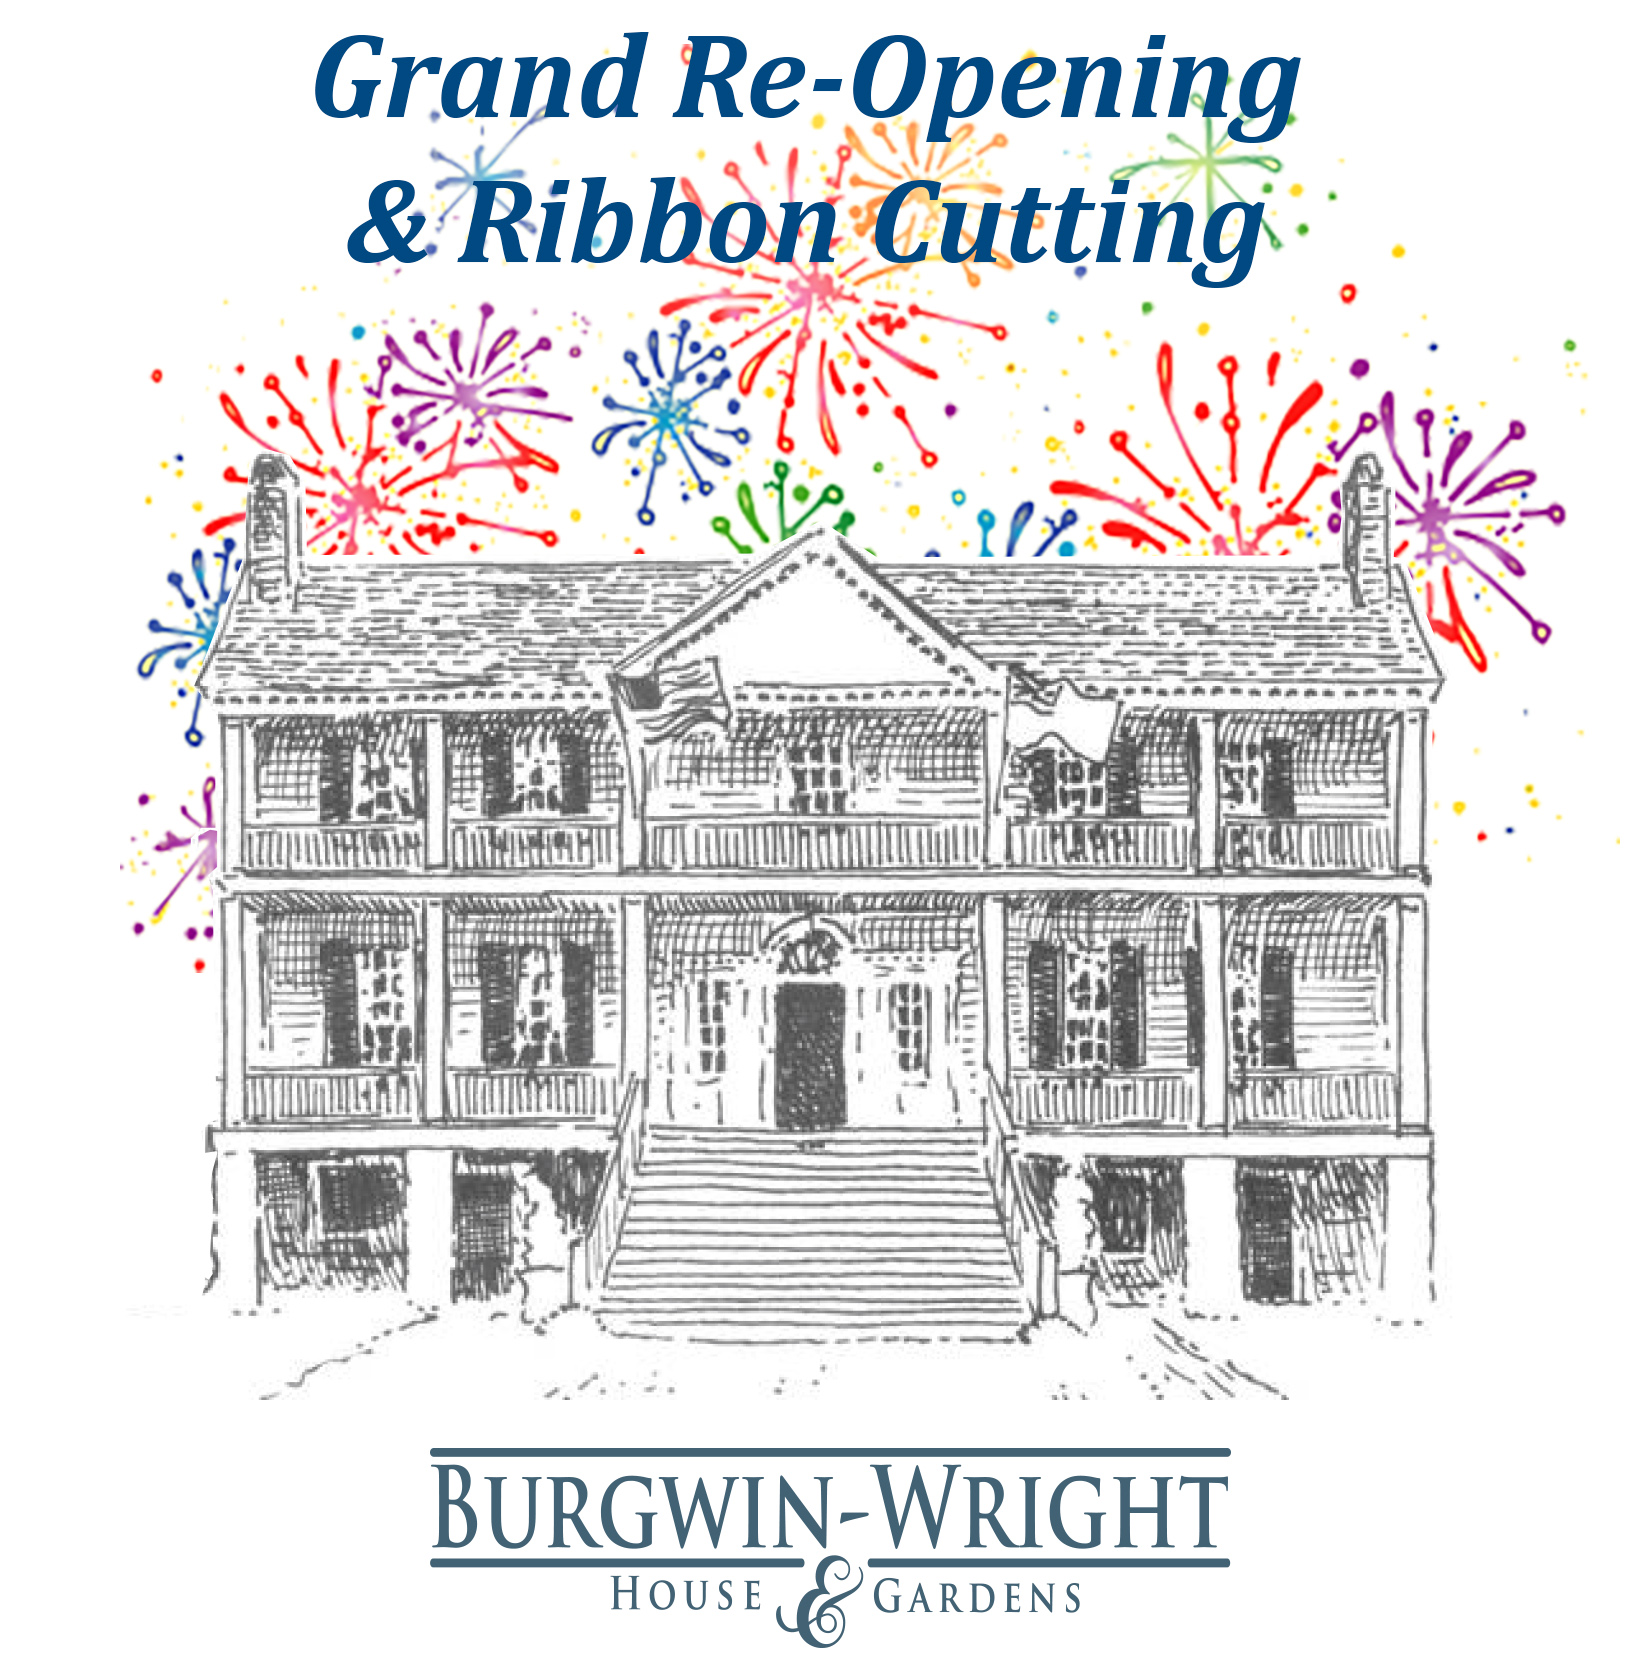 Burgwin-Wright House Ribbon-Cutting graphic